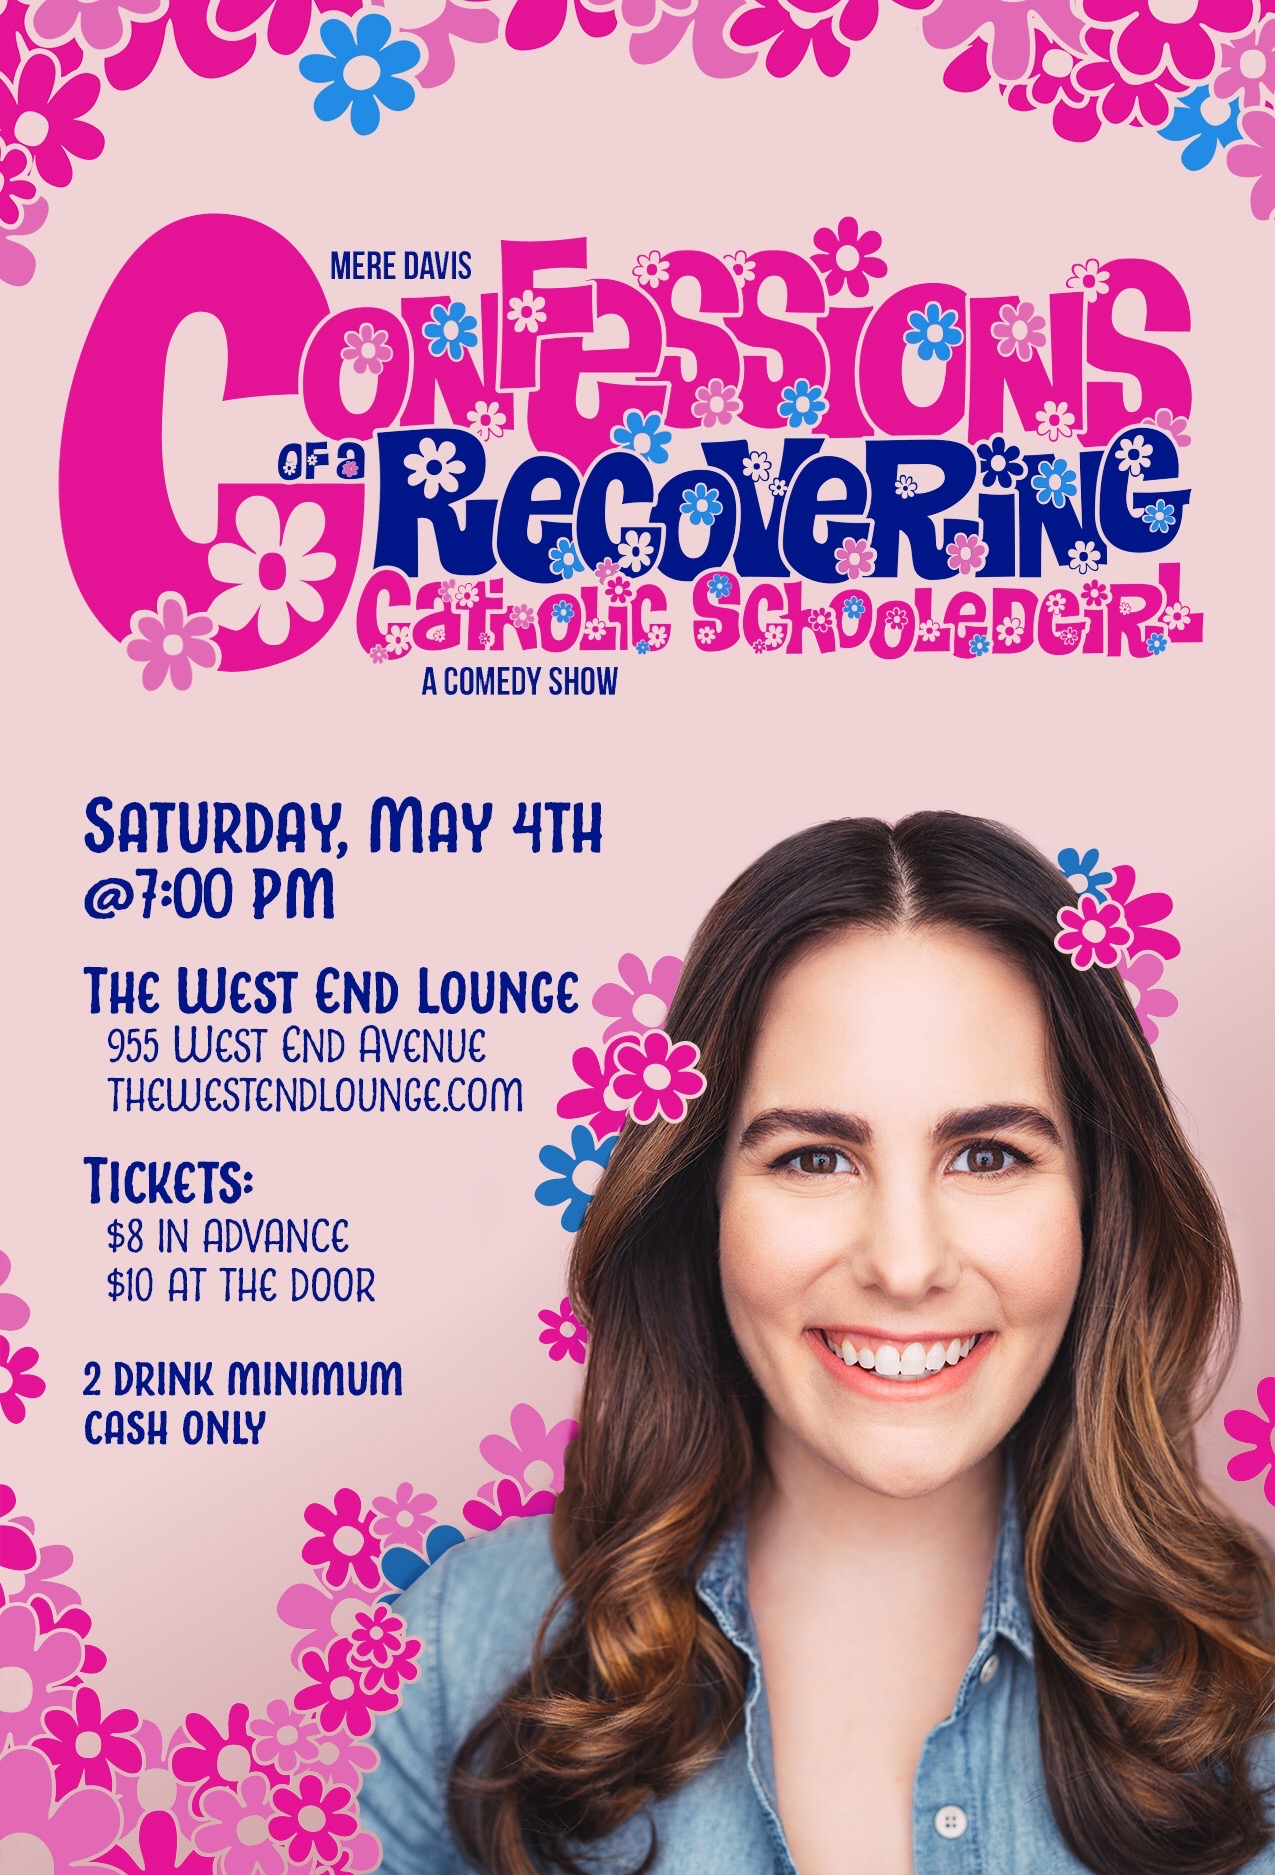 Confessions Of A Recovering Catholic Schooledgirl pink promo